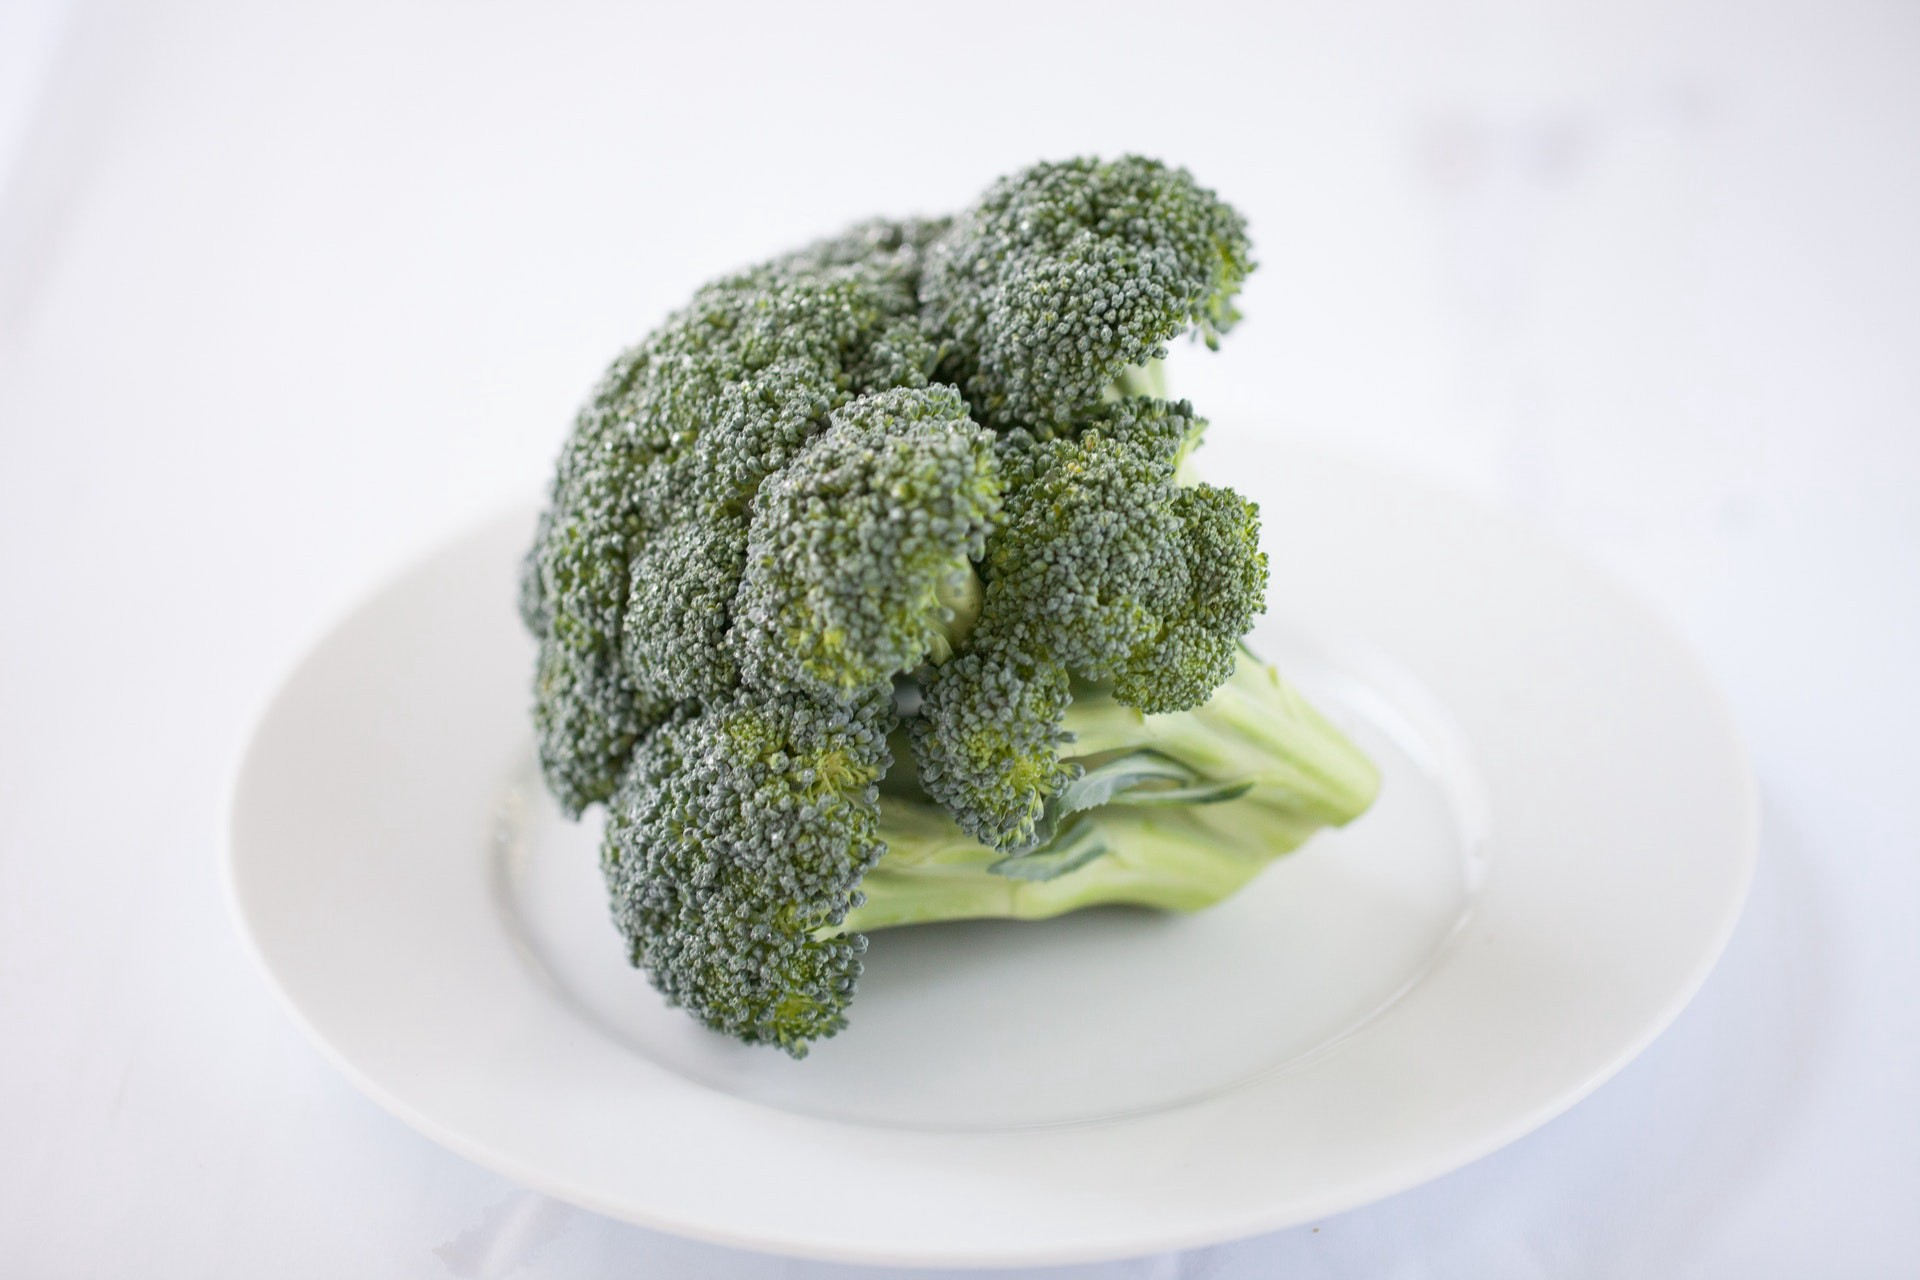 Broccoli Can T Cure Colorectal Cancer By Gideon M K Health Nerd Medium